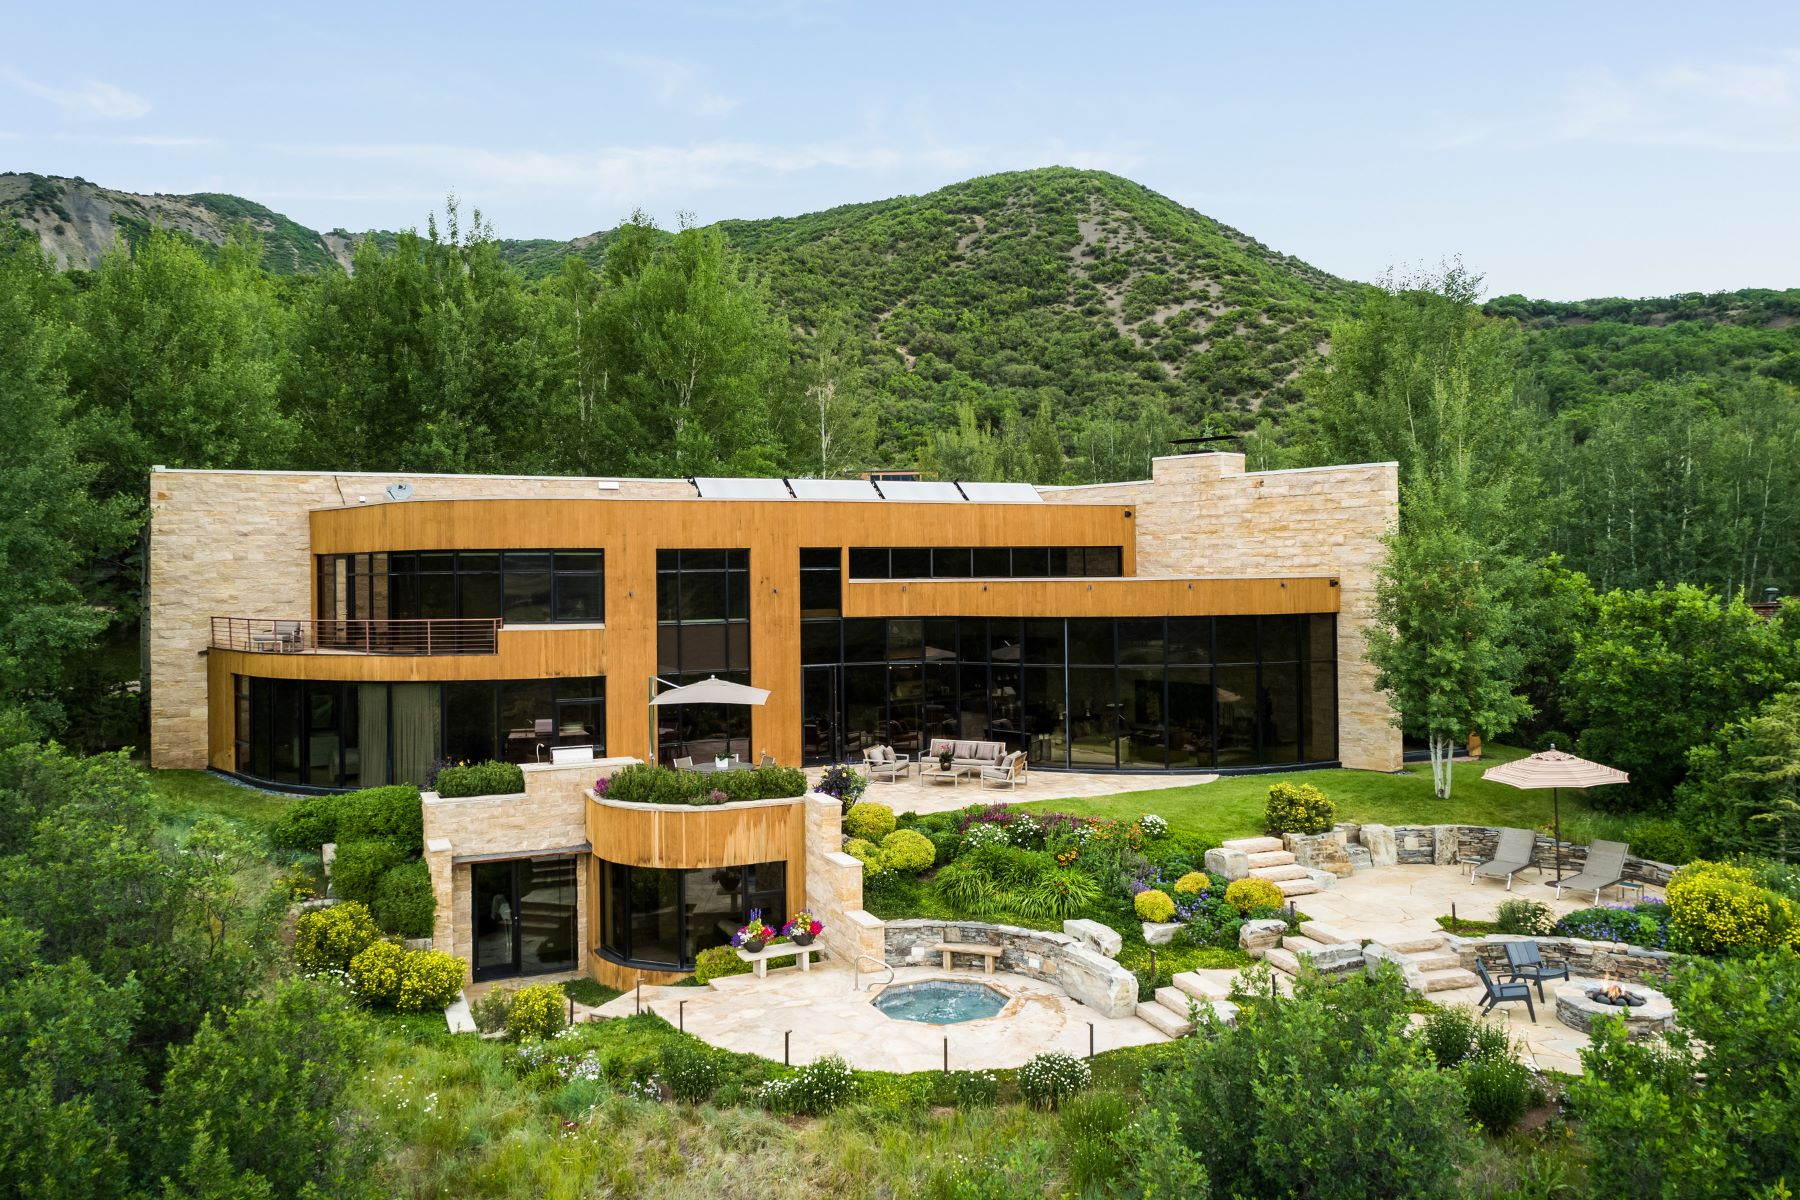 Single Family Home for Active at Horse Ranch Estate 143 Saddleback Lane Snowmass Village, 81615 United States